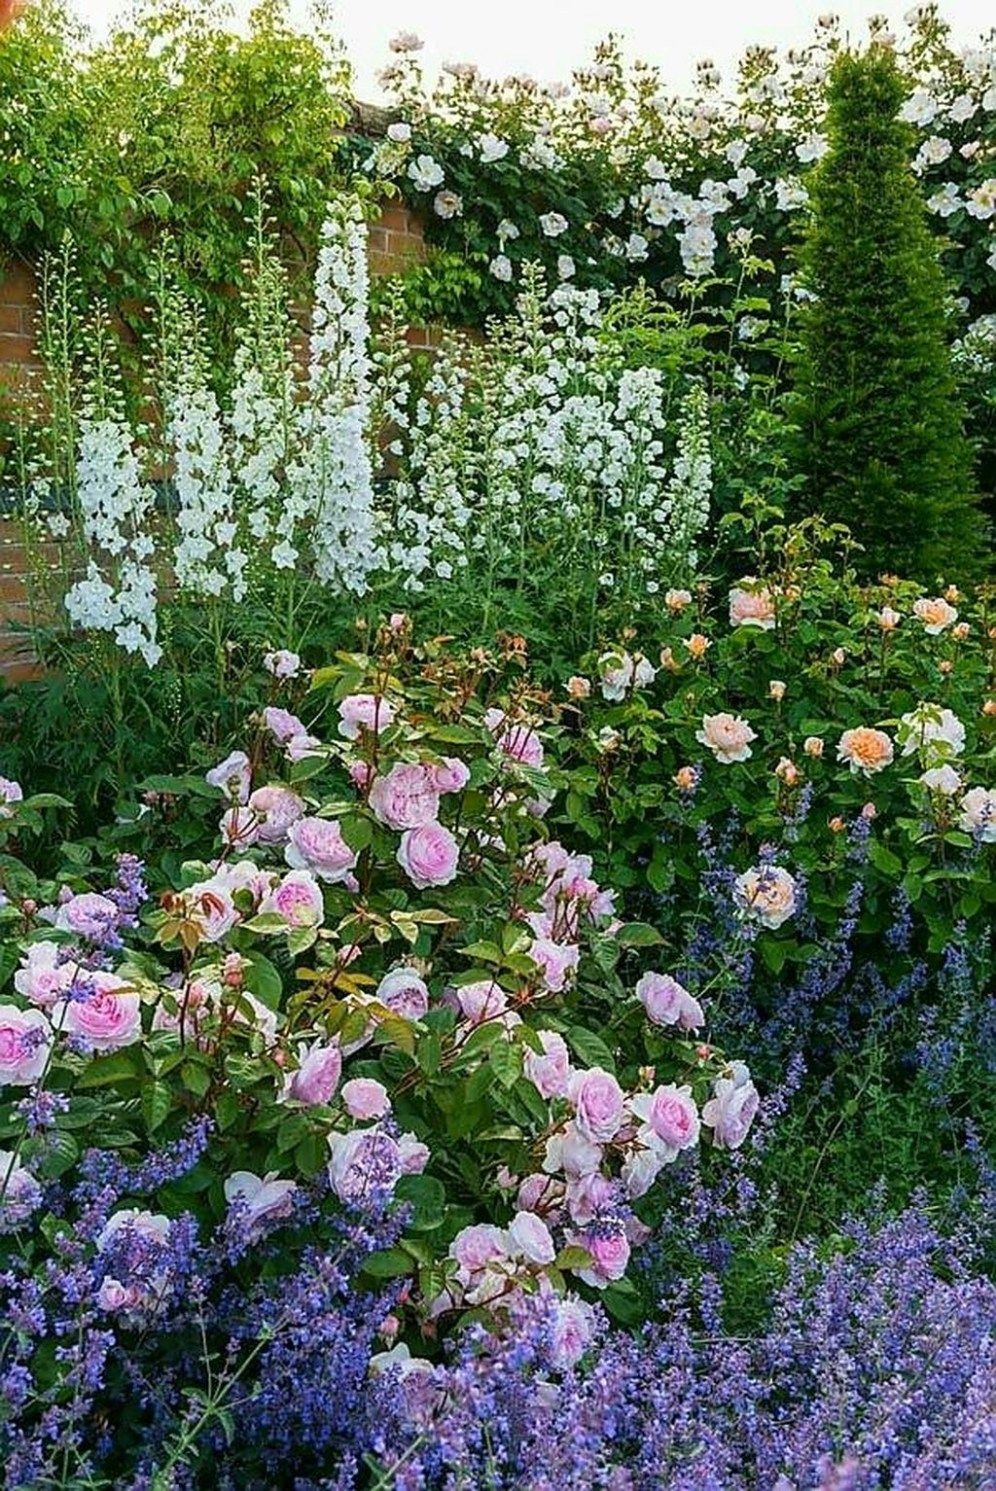 Inspiring Planting Combination Ideas For Your Garden 25 - 99BESTDECOR #cottagegardens